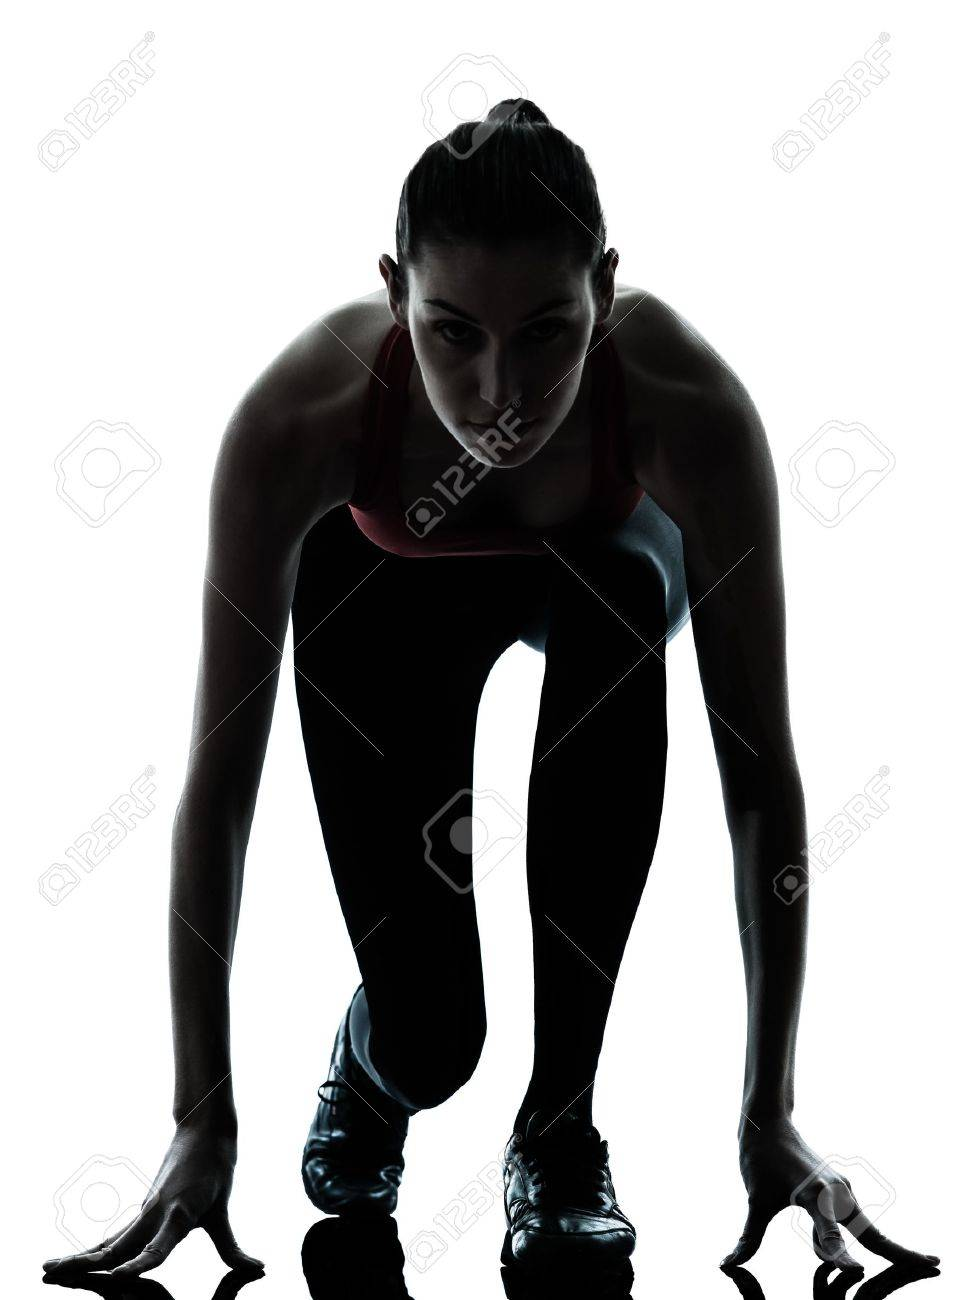 one caucasian woman sprinter on starting block in silhouette studio isolated on white background Stock Photo - 13543131